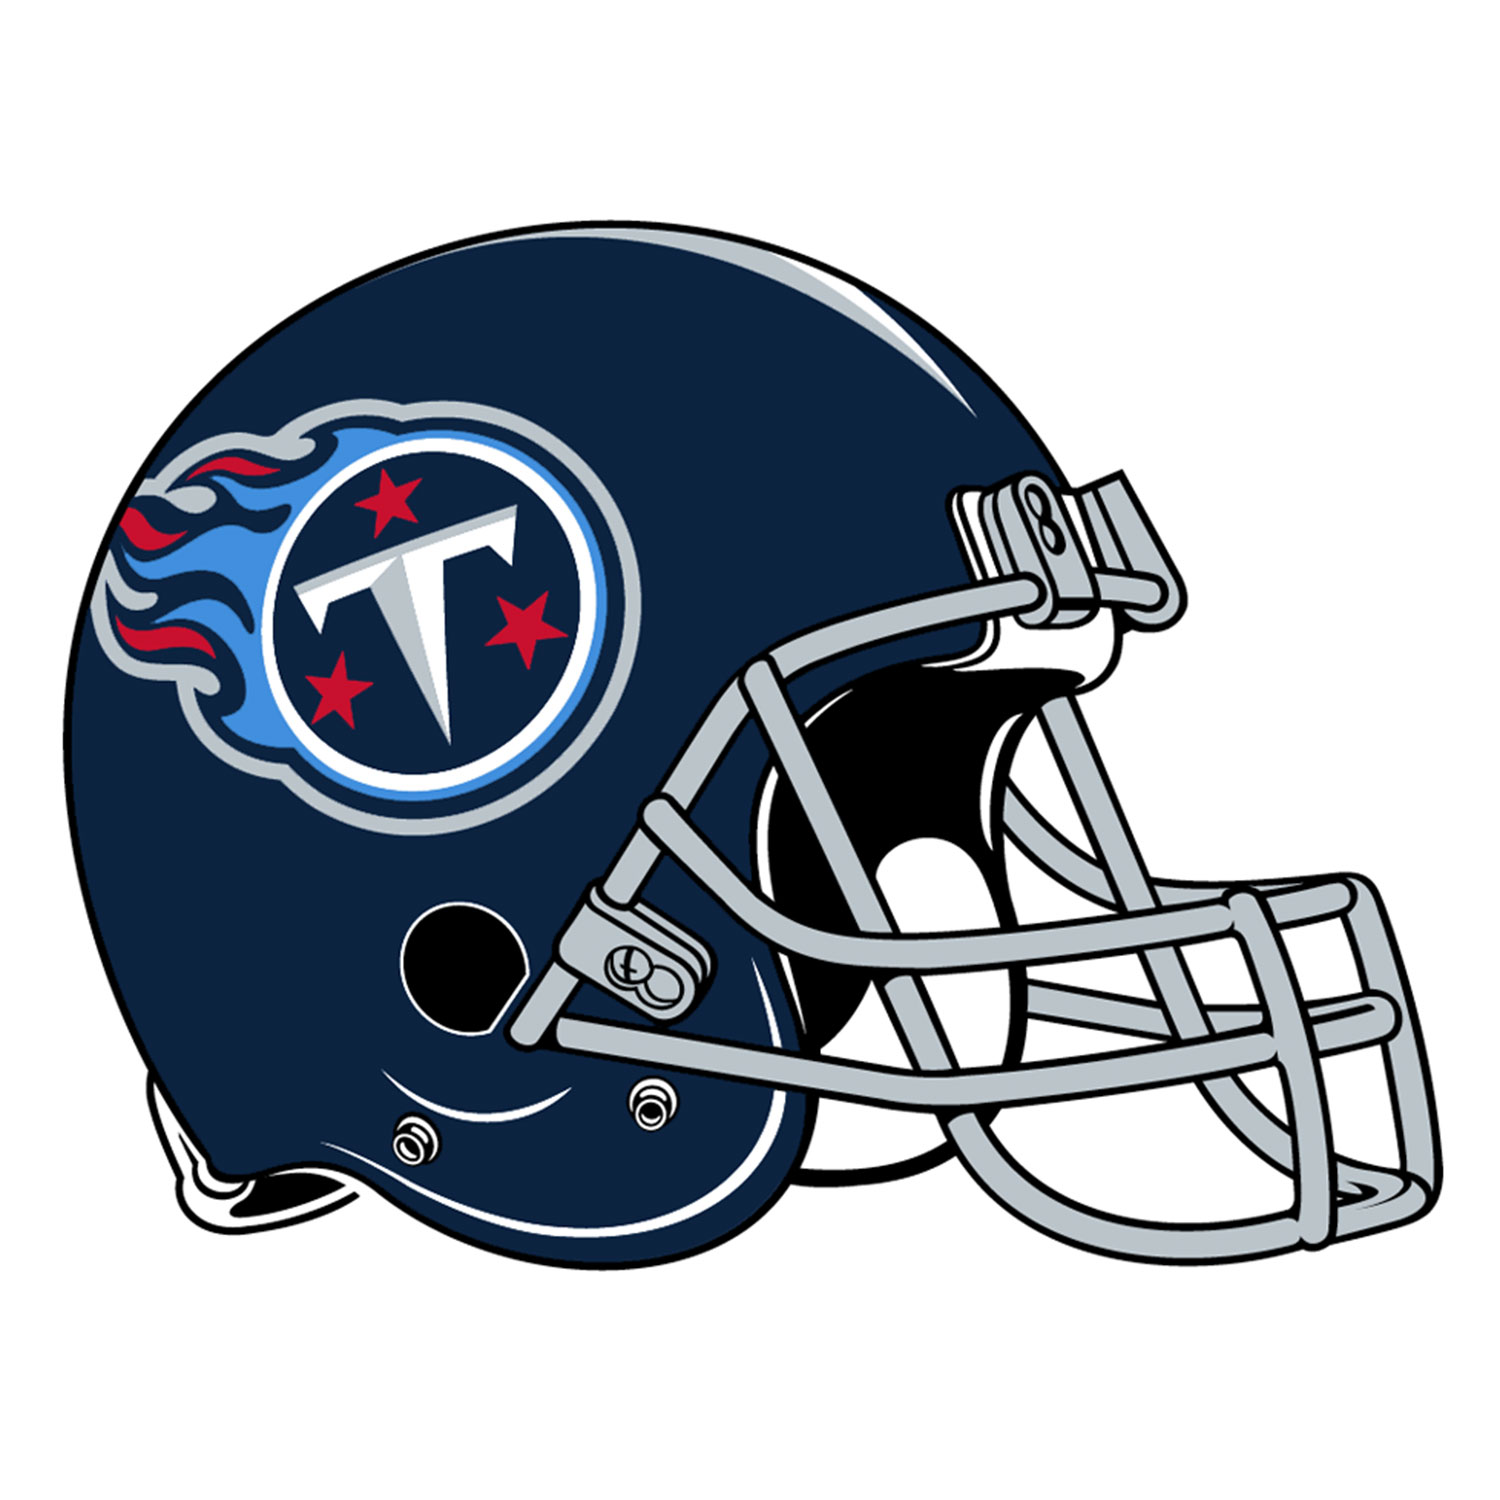 TITANS GAMES - ONLINE STREAMING